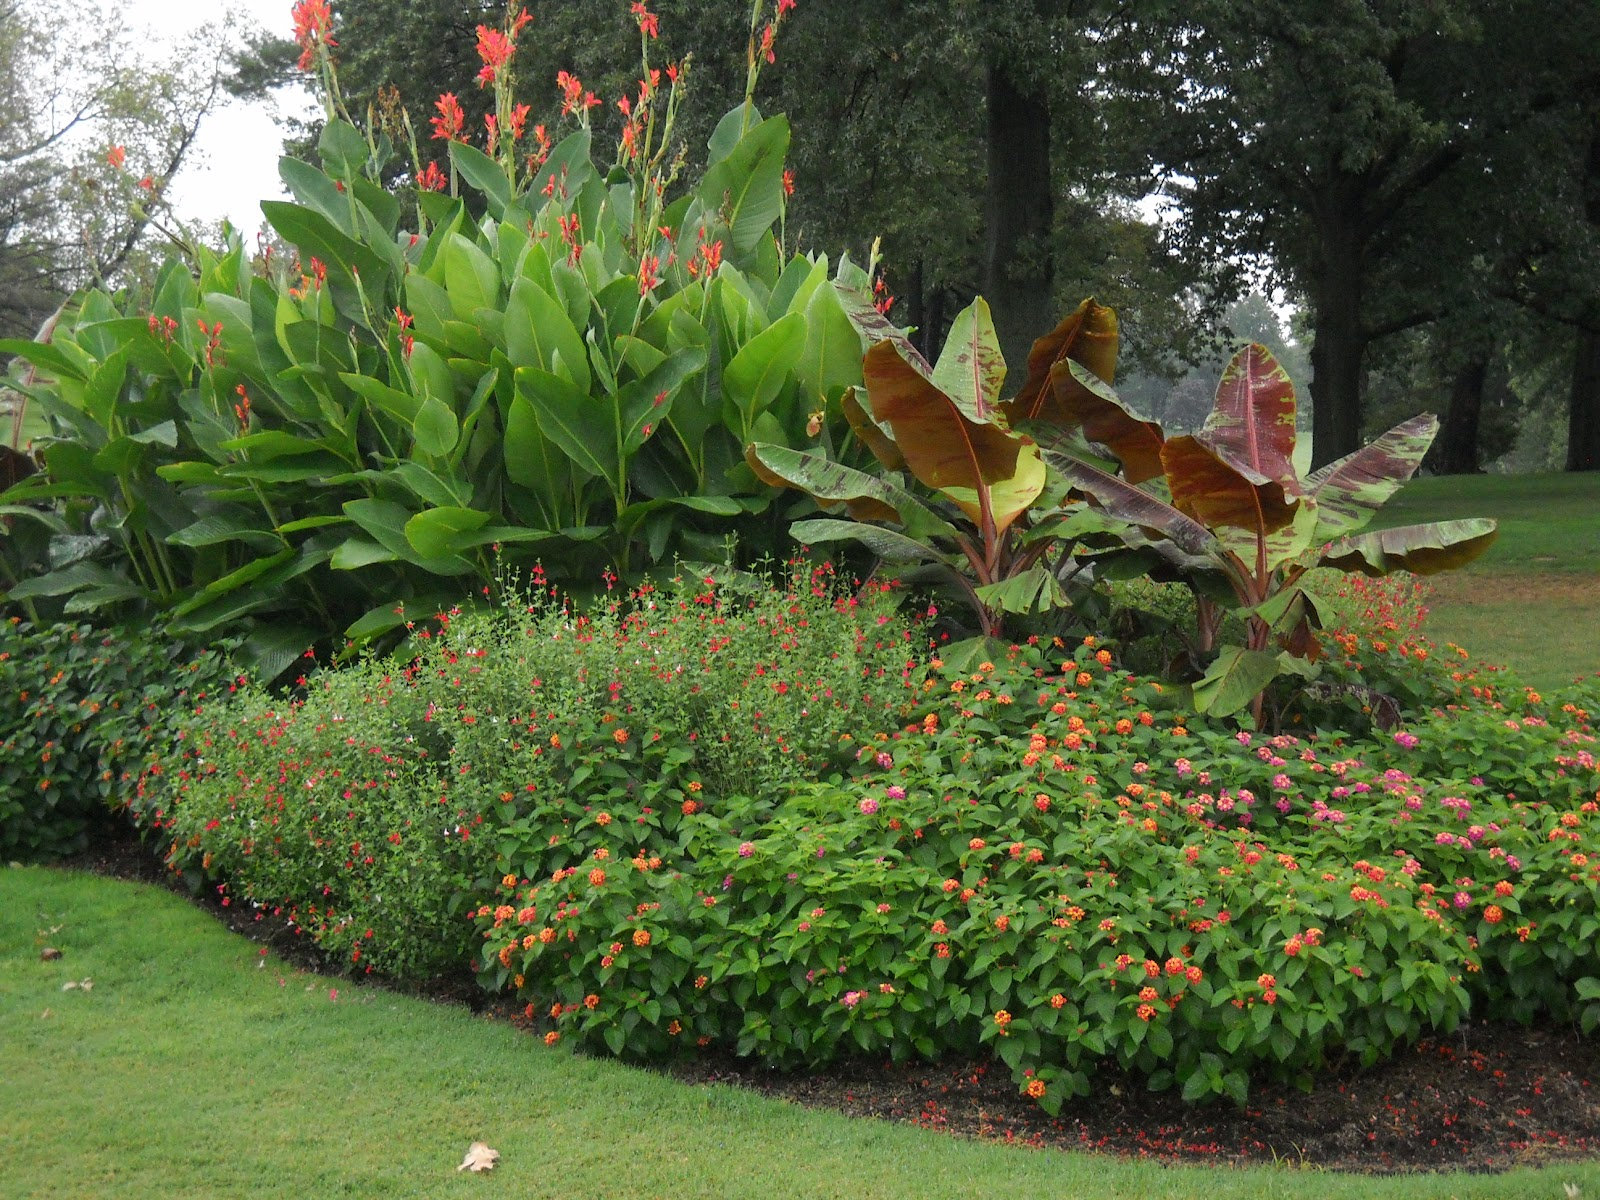 Glen echo country club golf course management for Ornamental trees for flower beds